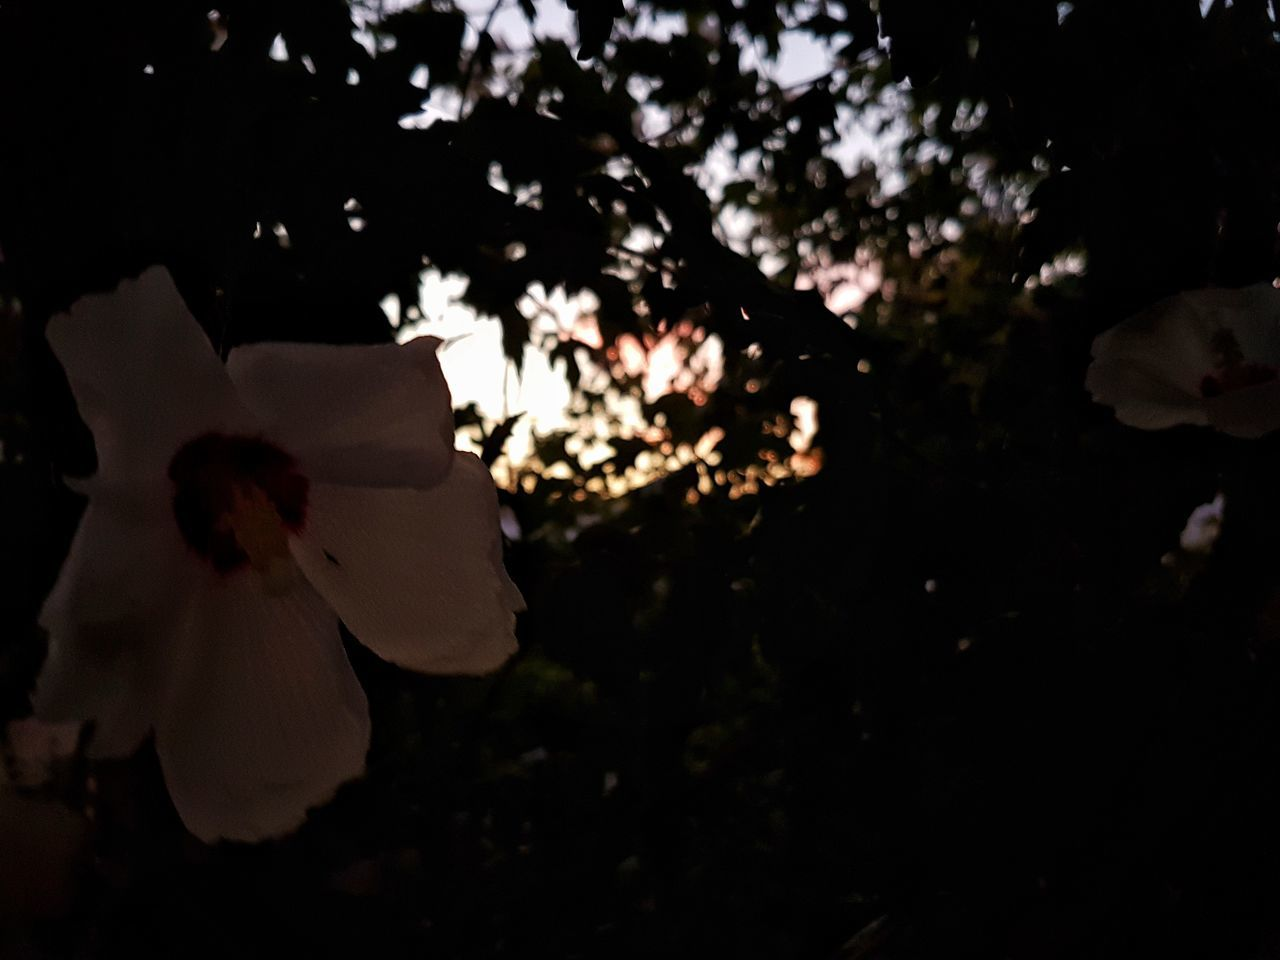 [TFC] maybe just a fail one 😅😅 Tree Sunset No People Outdoors Close-up Nature Night Contrast Scenics Sunlight Inspirations Dark Darkness And Light Garden Flower Flowers White Leaves Beauty In Nature Colors Tranquility Fragility Light And Shadow Hope Trying New Things